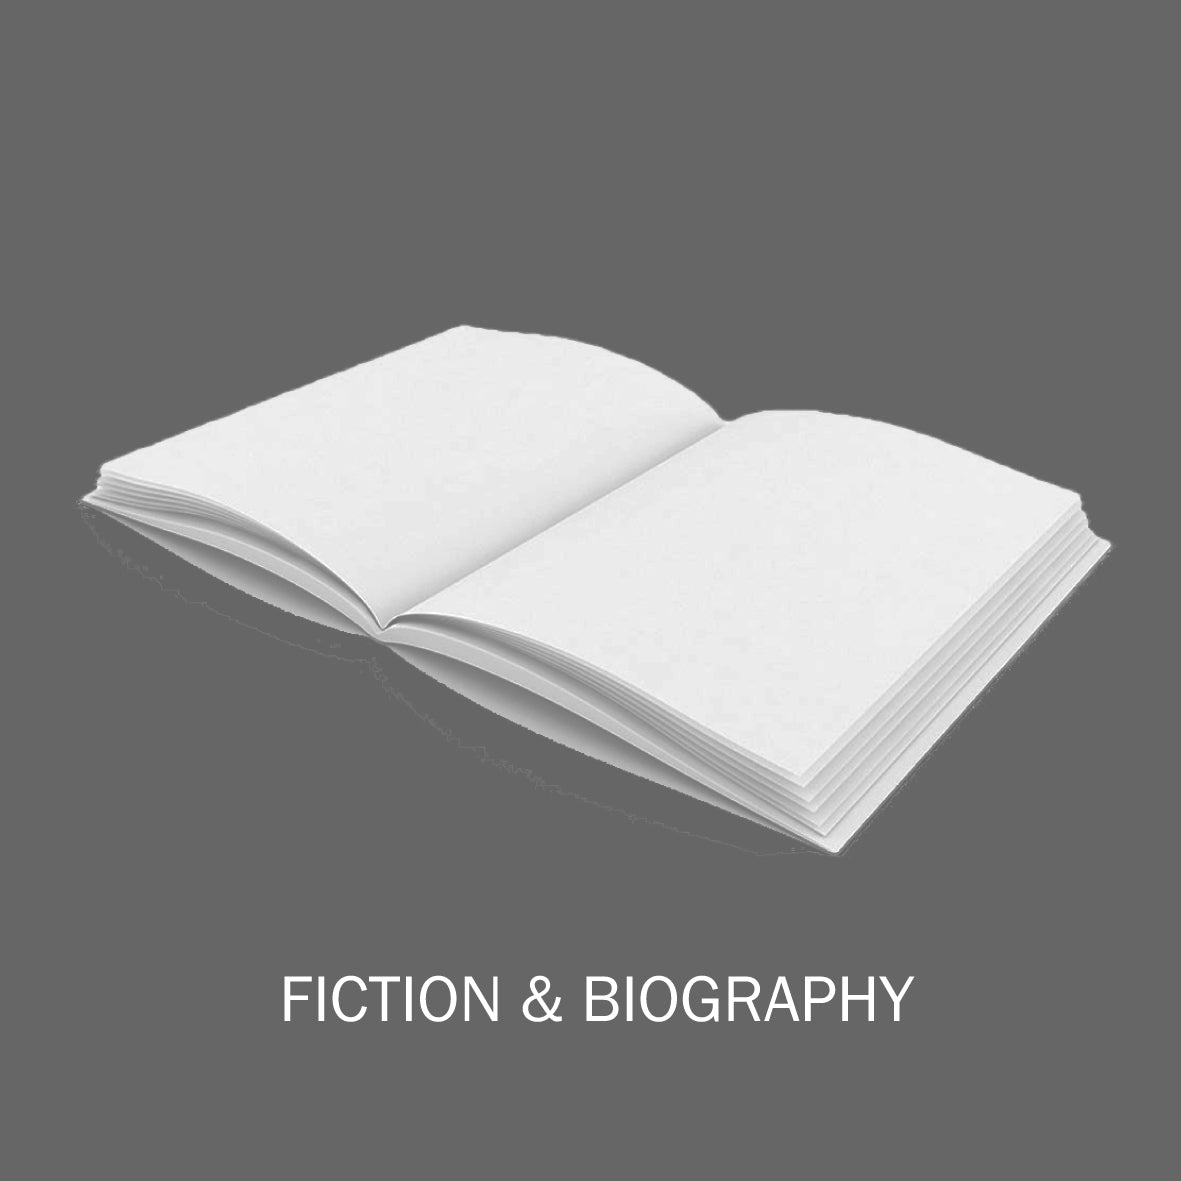 Fiction & Biography